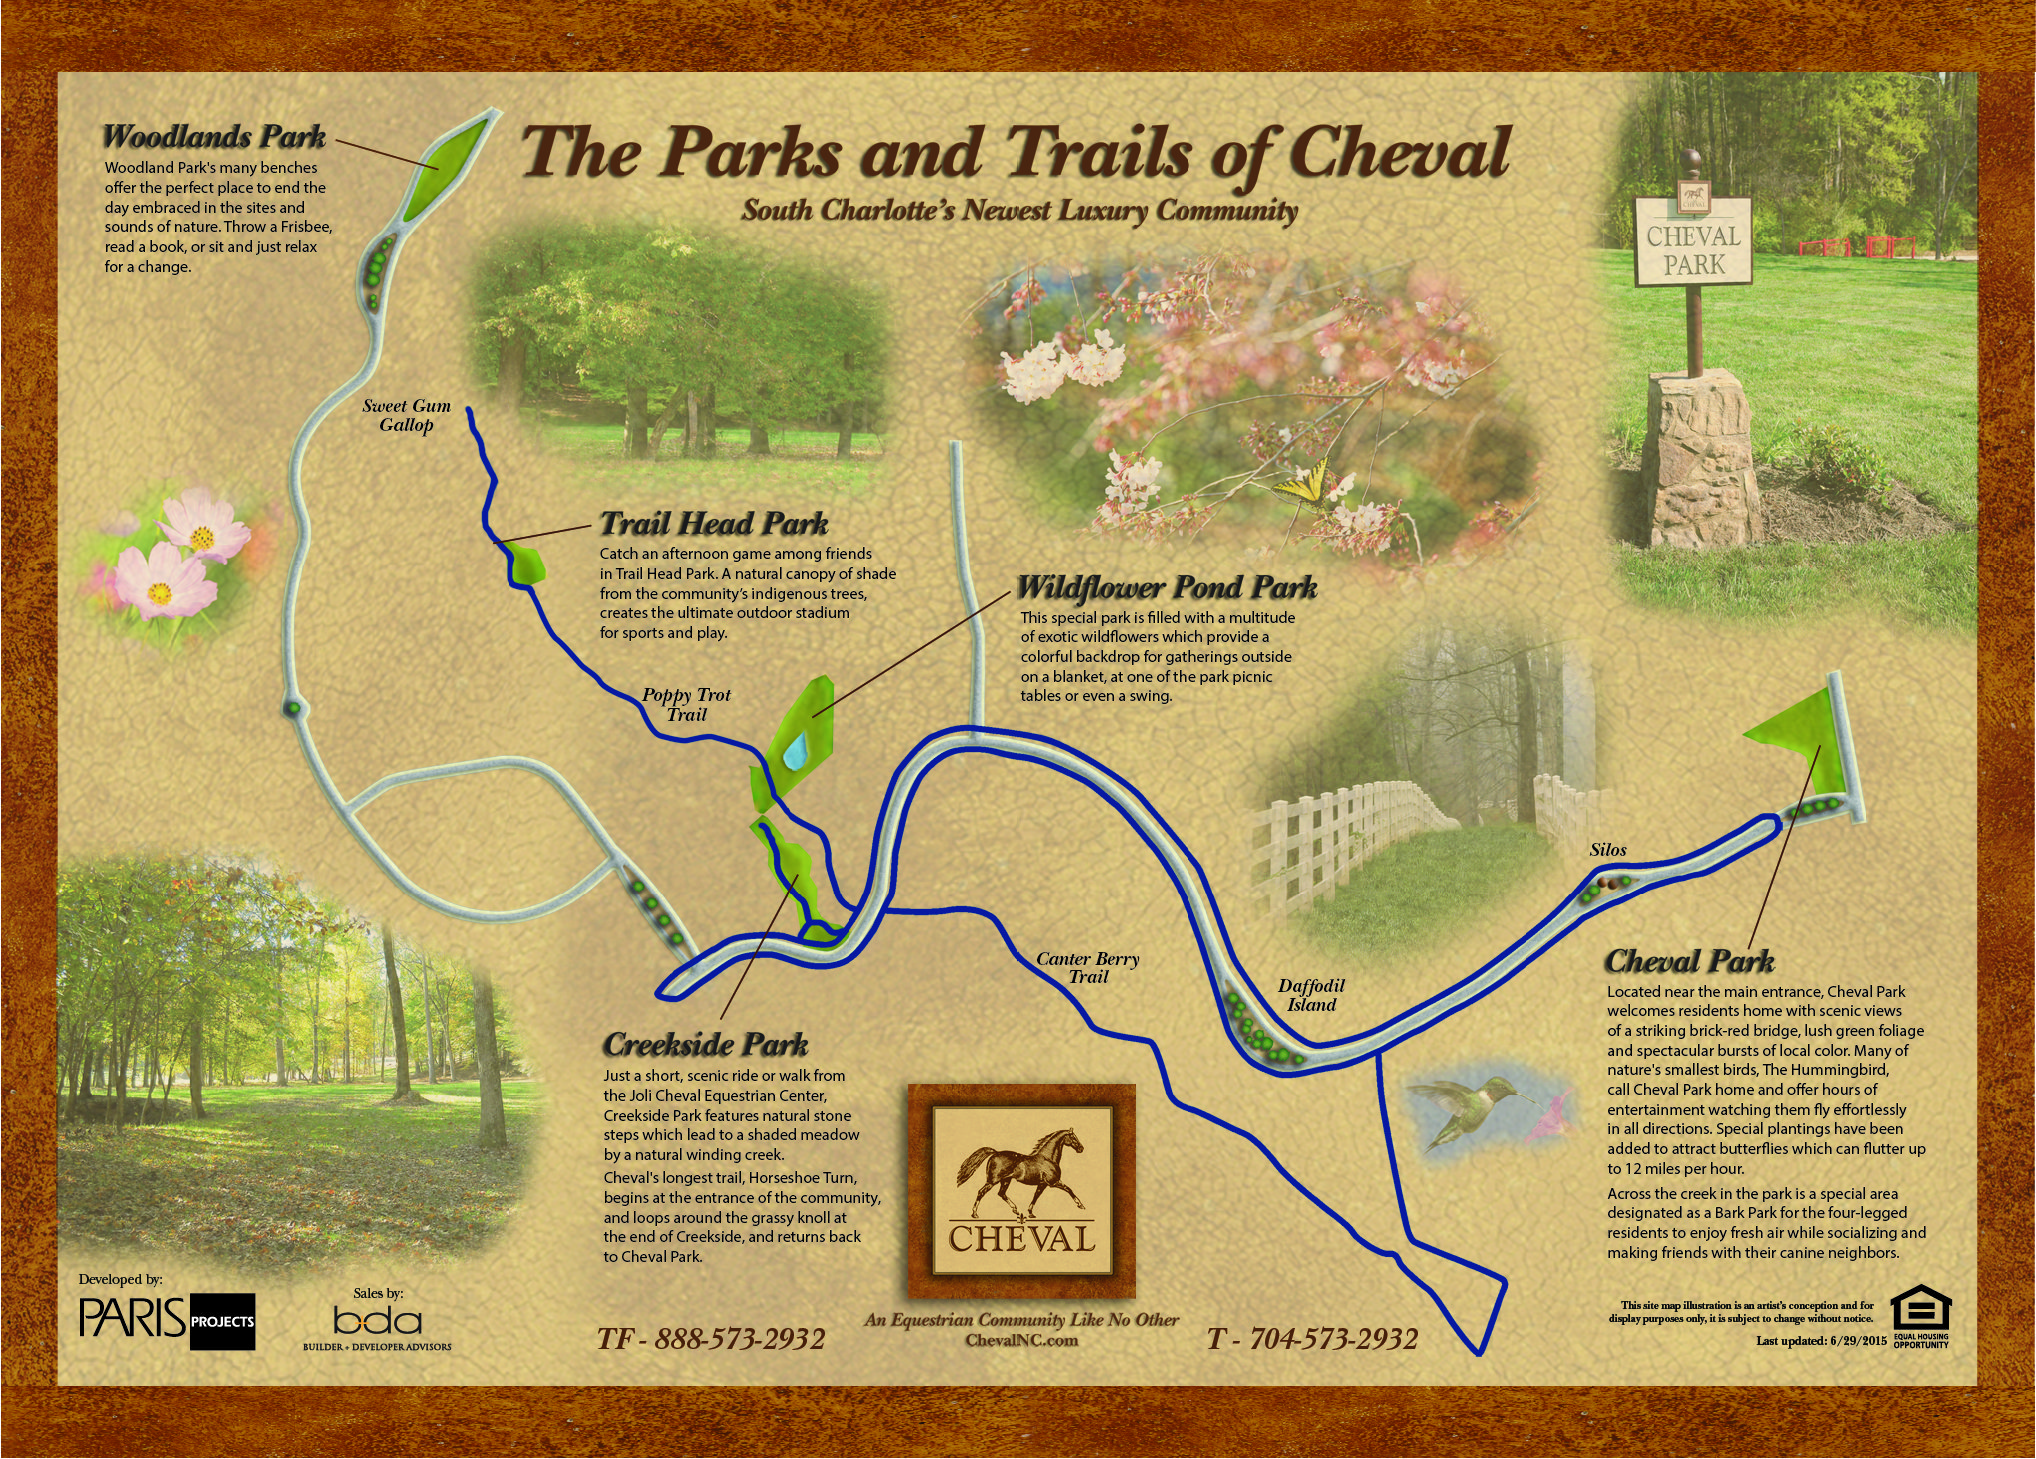 Trail Map 28 x 20 - 7.16.15 - ChevalNC.com |Charlotte's Luxury ... on pine grove trail map, alexandria trail map, concord trail map, pennsylvania trail map, summit ridge trail map, georgetown trail map, morgan creek trail map, emerald ridge trail map, jefferson trail map, laurel ridge trail map, ironhorse trail map, beech creek trail map, sycamore trail map, north woods trail map, timber ridge trail map, brownsville trail map, fisher farm trail map, spring mill trail map, north carolina trail map, heritage park trail map,